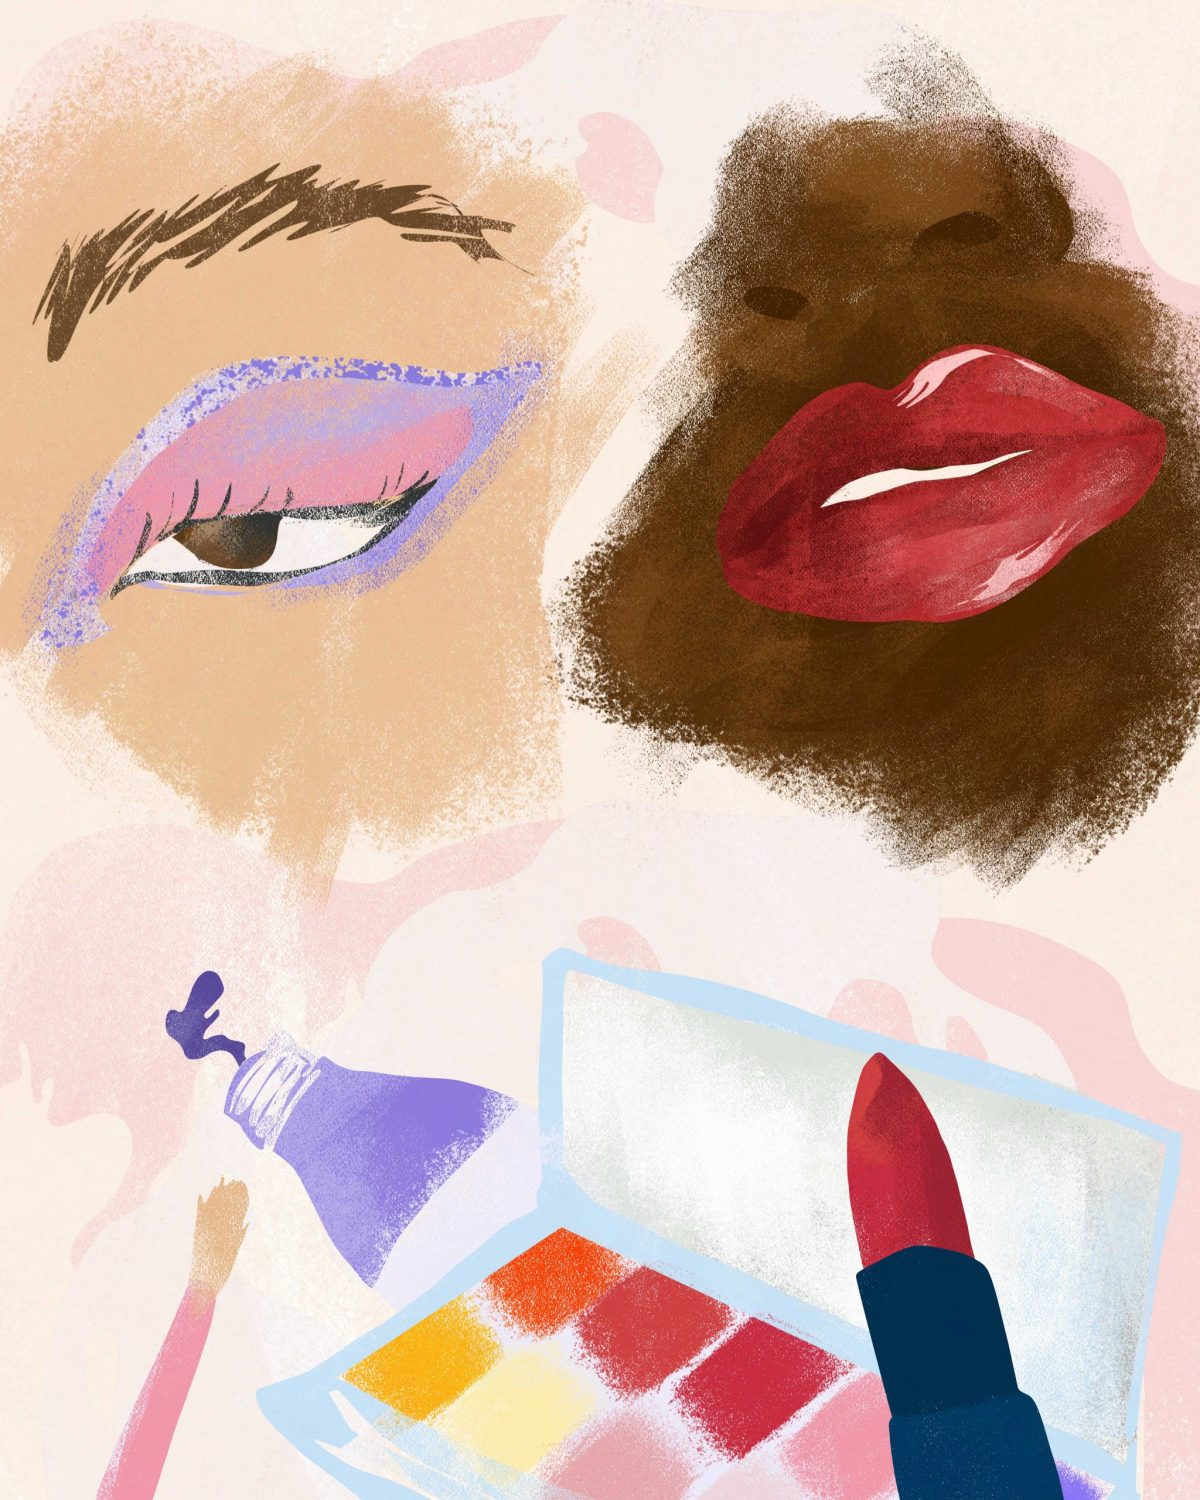 fashion editorial illustration of beauty products and eye make up and lipstick illustrator megan st clair